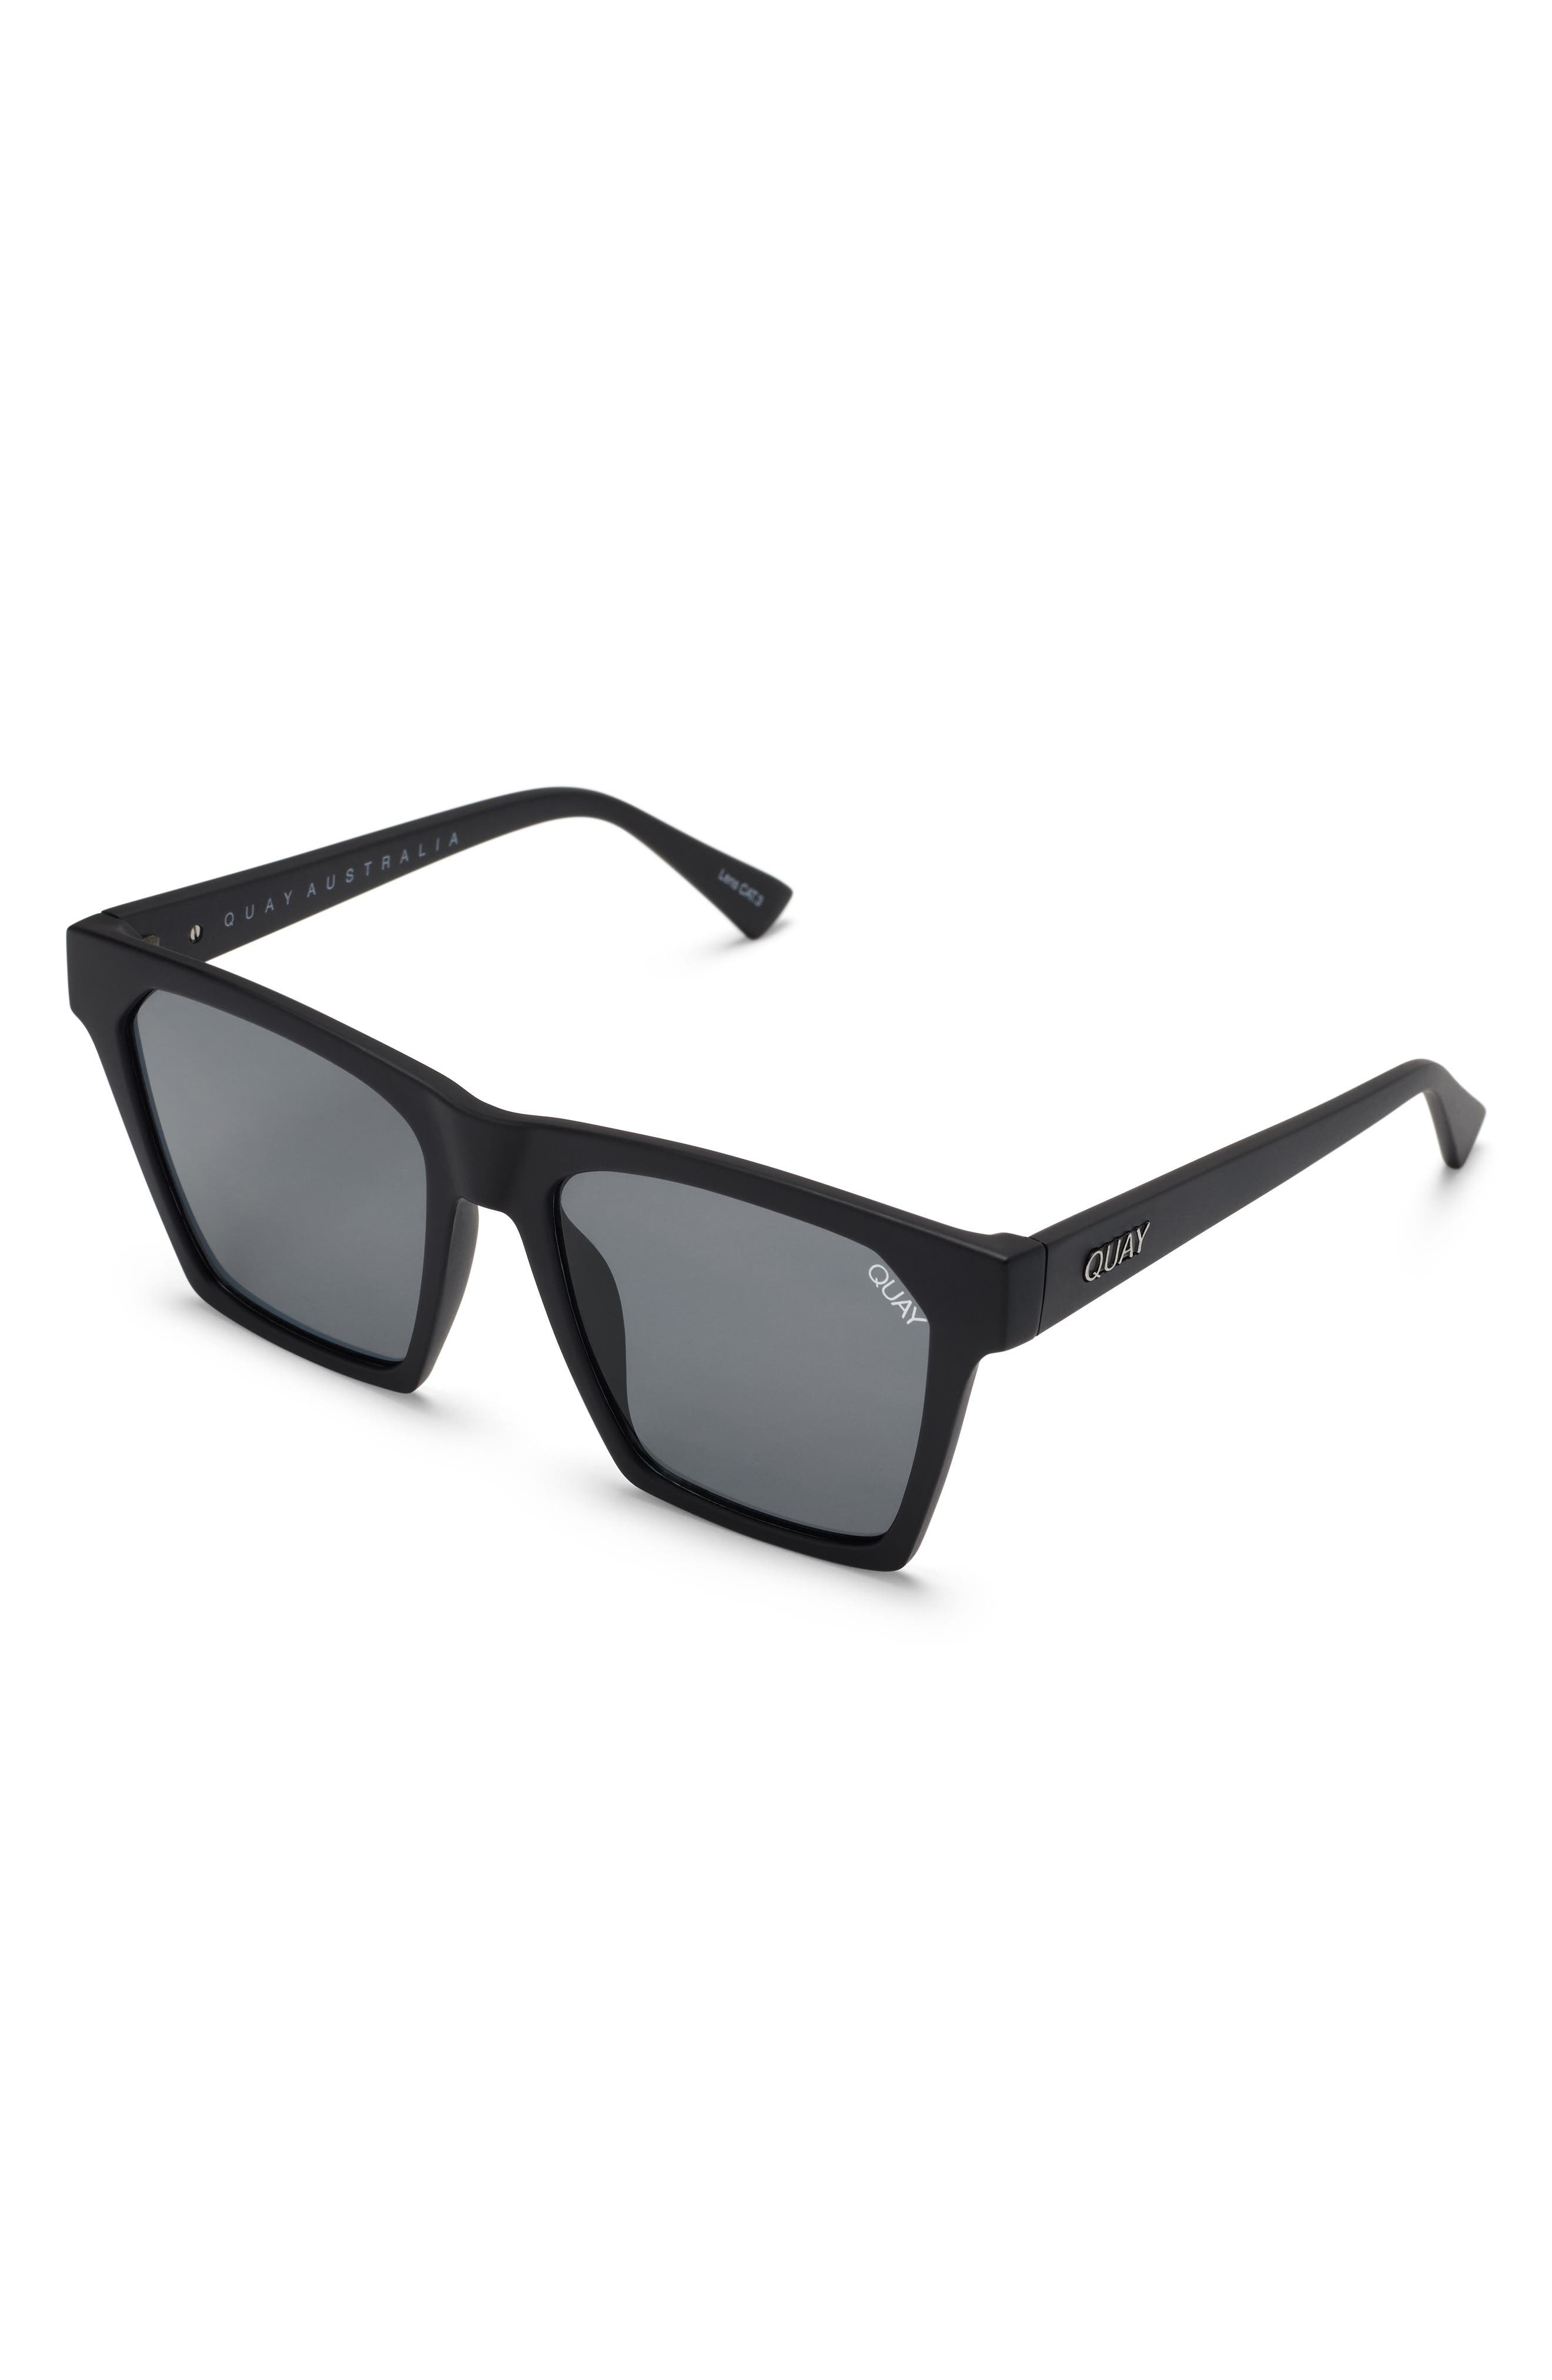 x Missguided Alright 55mm Square Sunglasses,                             Alternate thumbnail 5, color,                             001